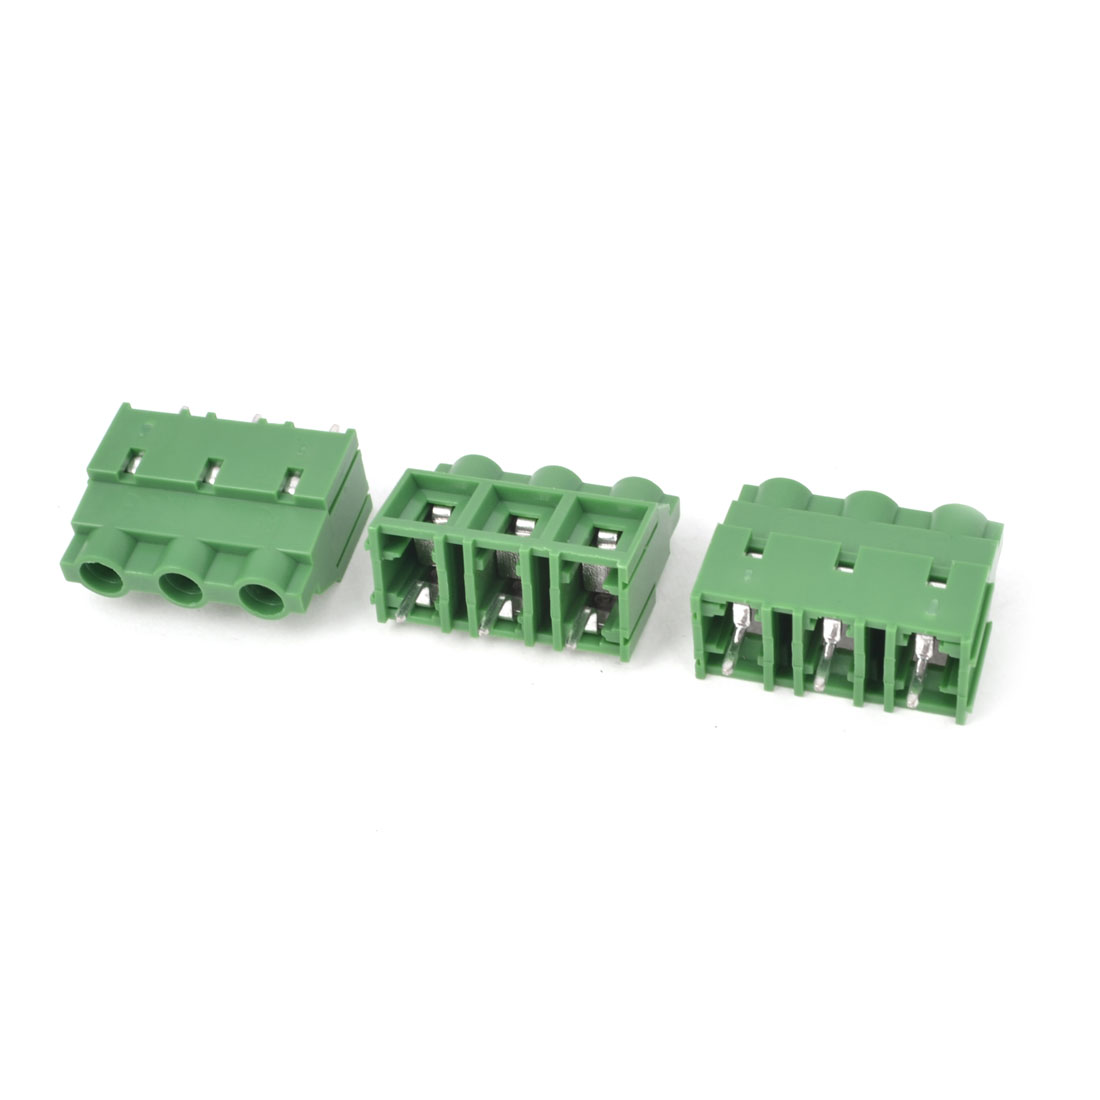 3Pcs 300V 30A 3P Poles PCB Screw Terminal Block Connector 9.5mm Pitch Green